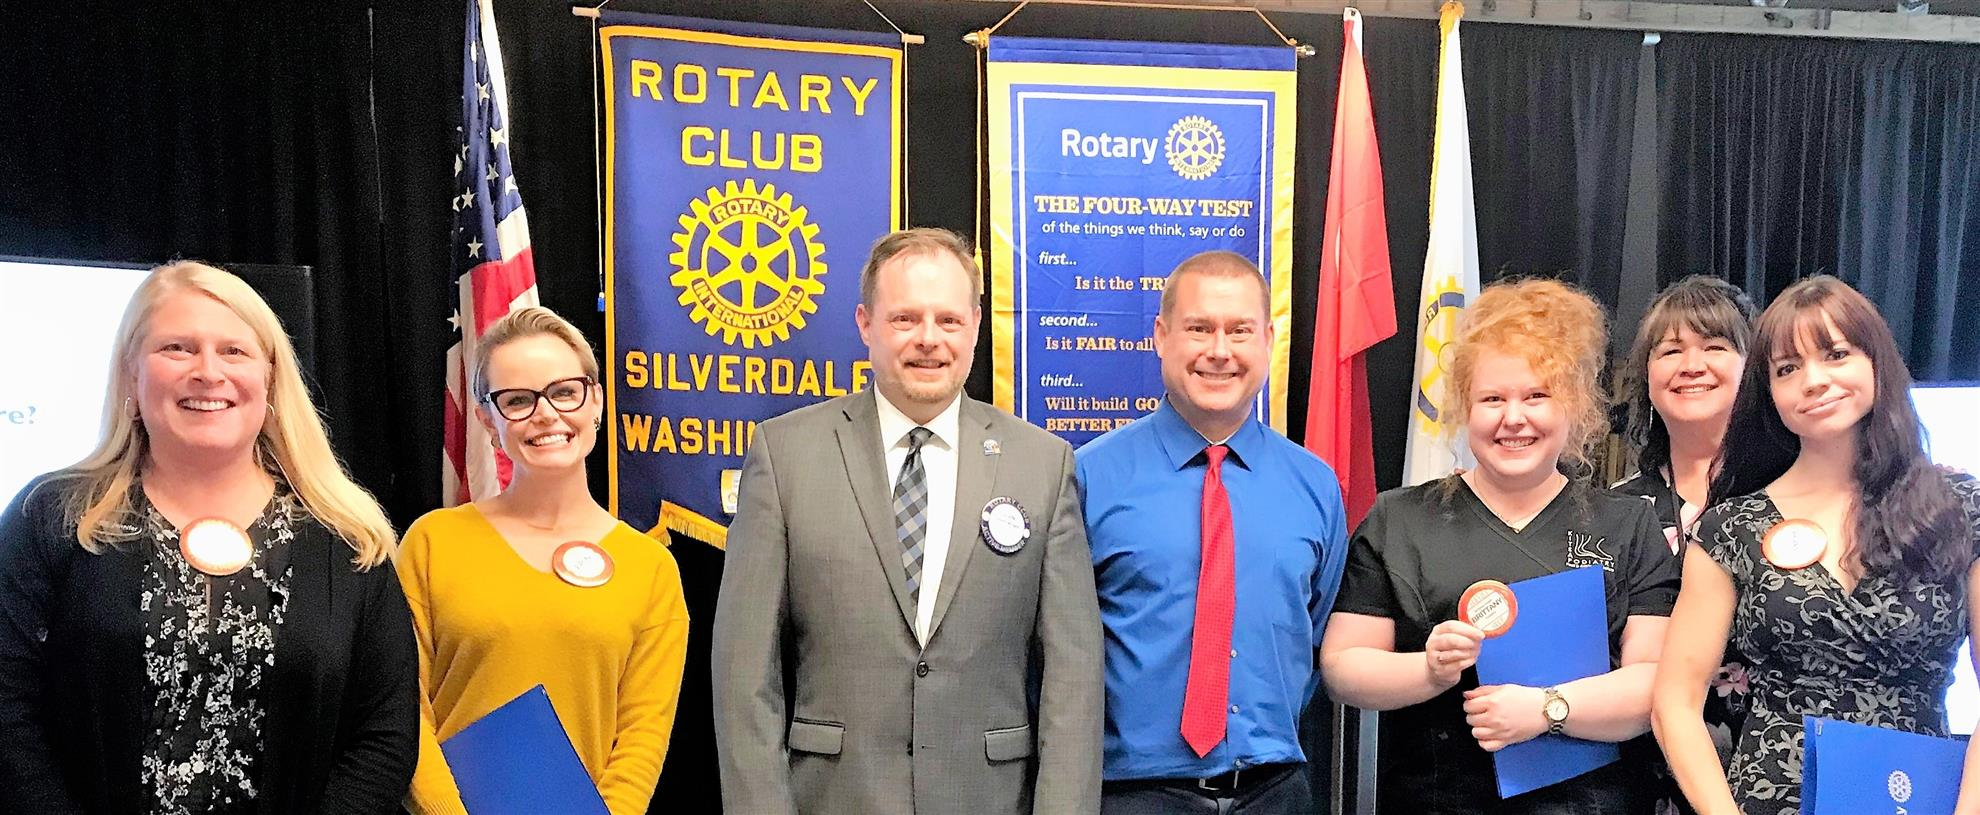 Four New Members Inducted into the Rotary Club of Silverdale